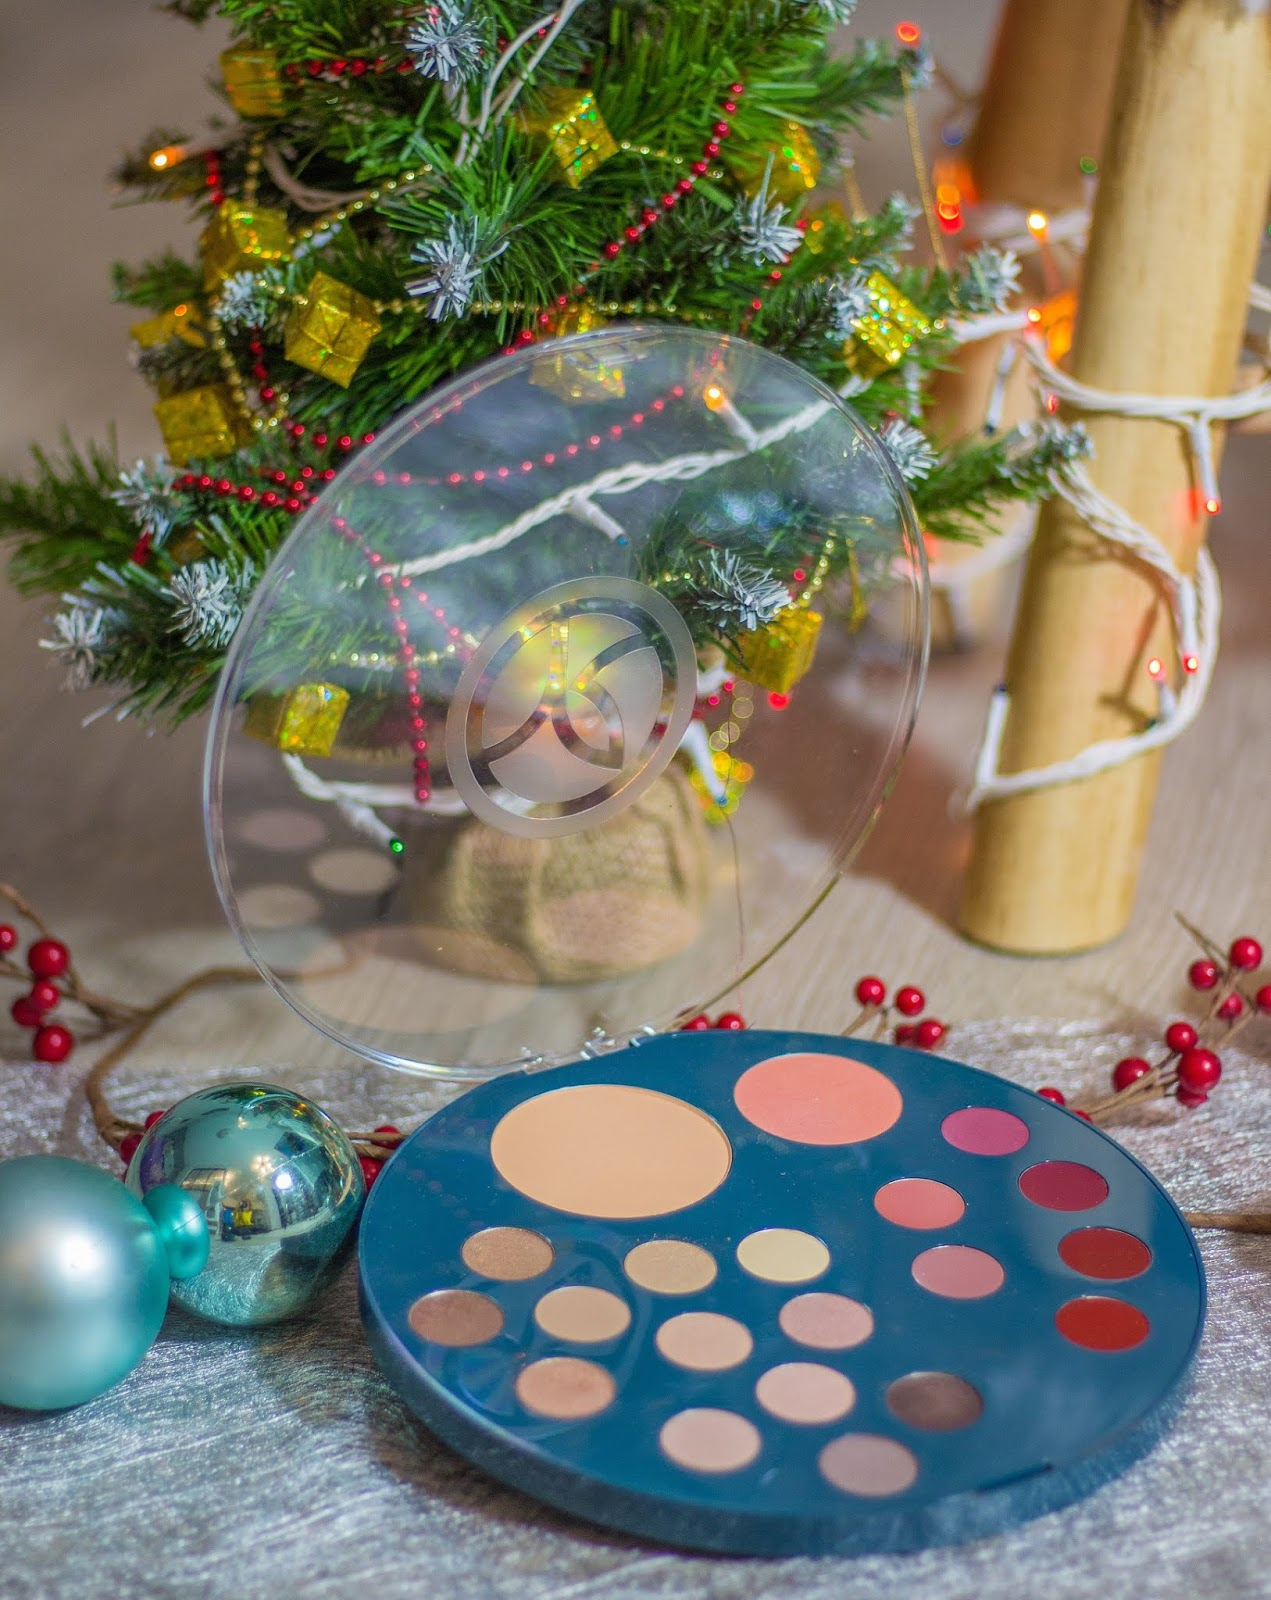 maquillage-de-fetes-yves-rocher